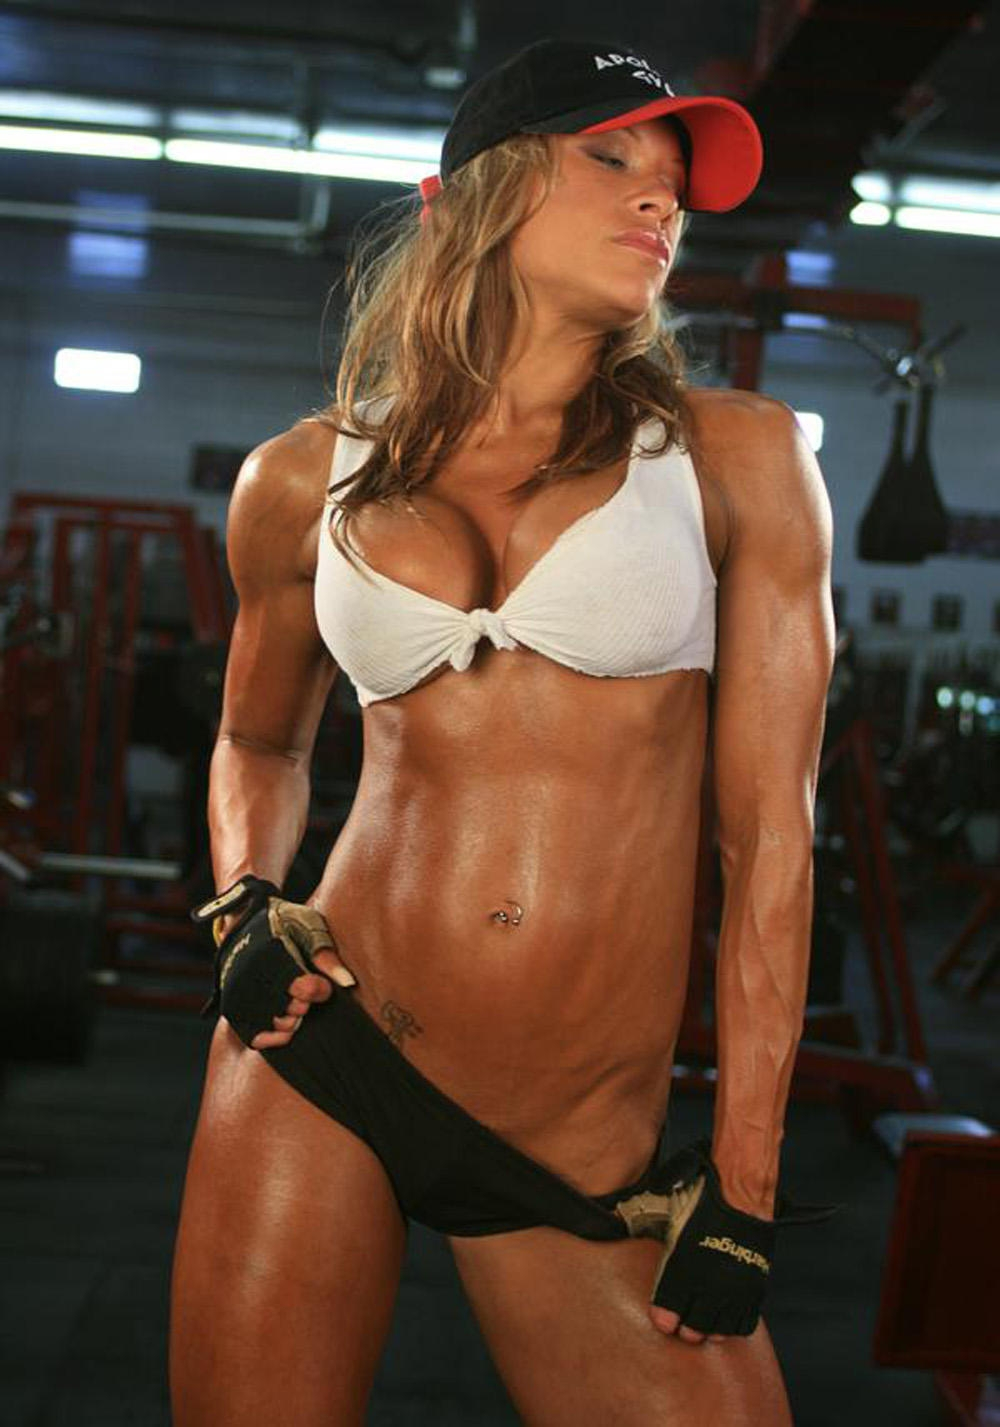 Muscle women foto hentai pictures